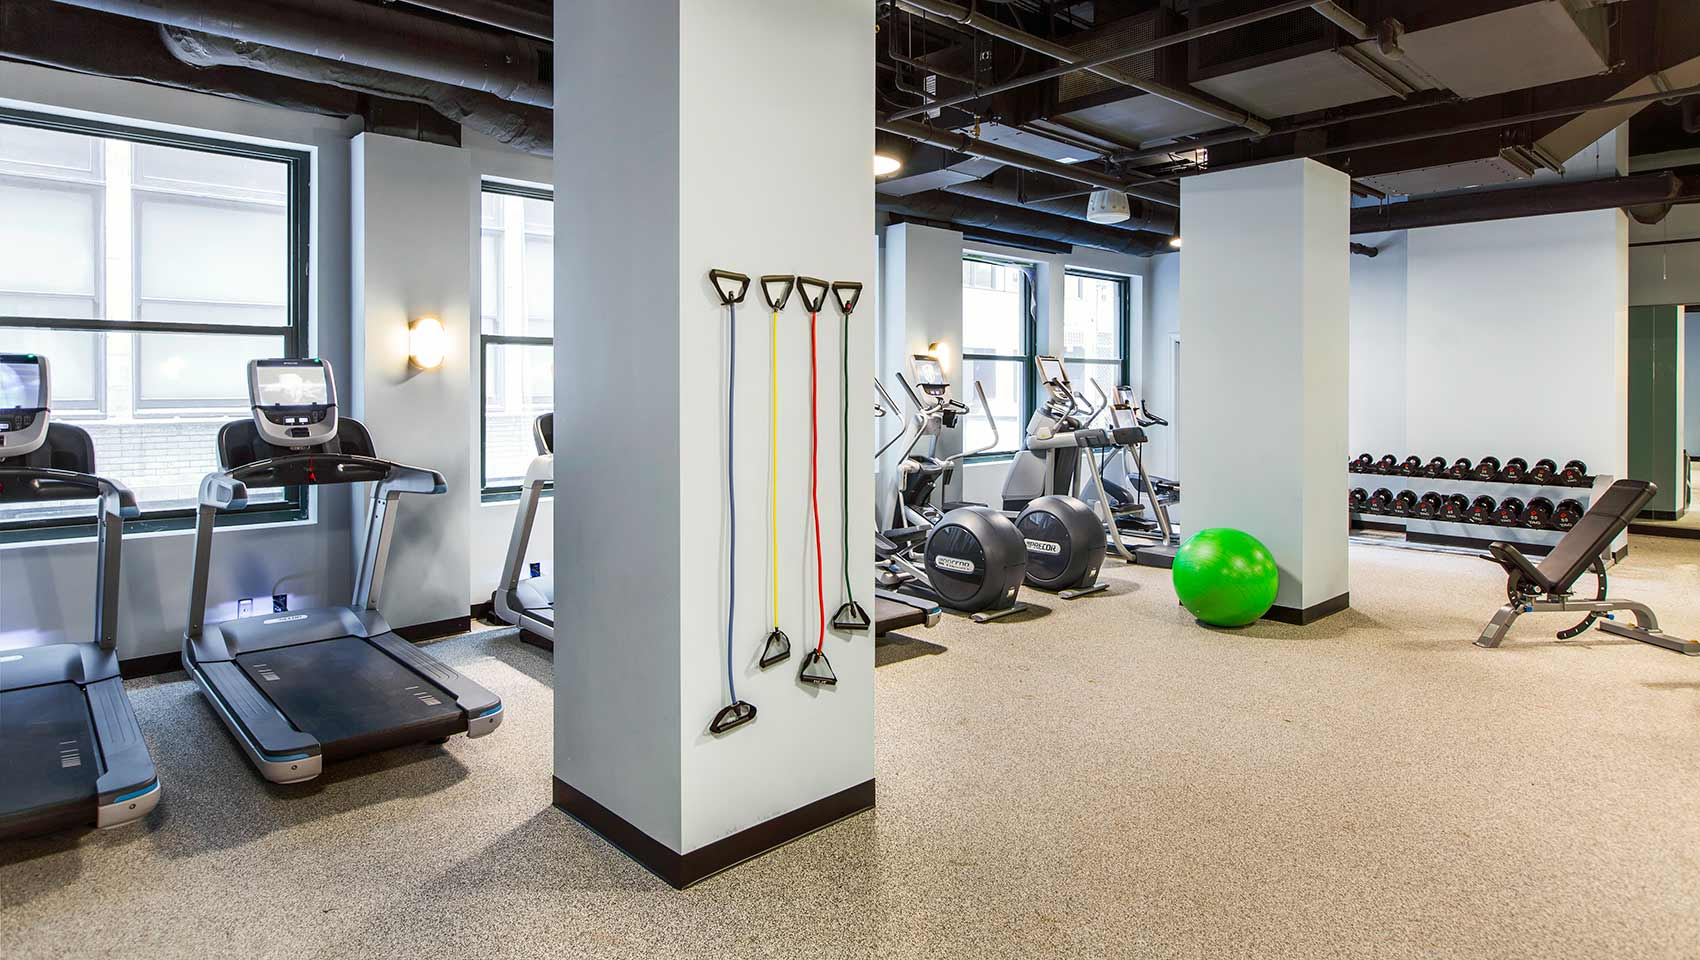 Hotel fitness center design pixshark images